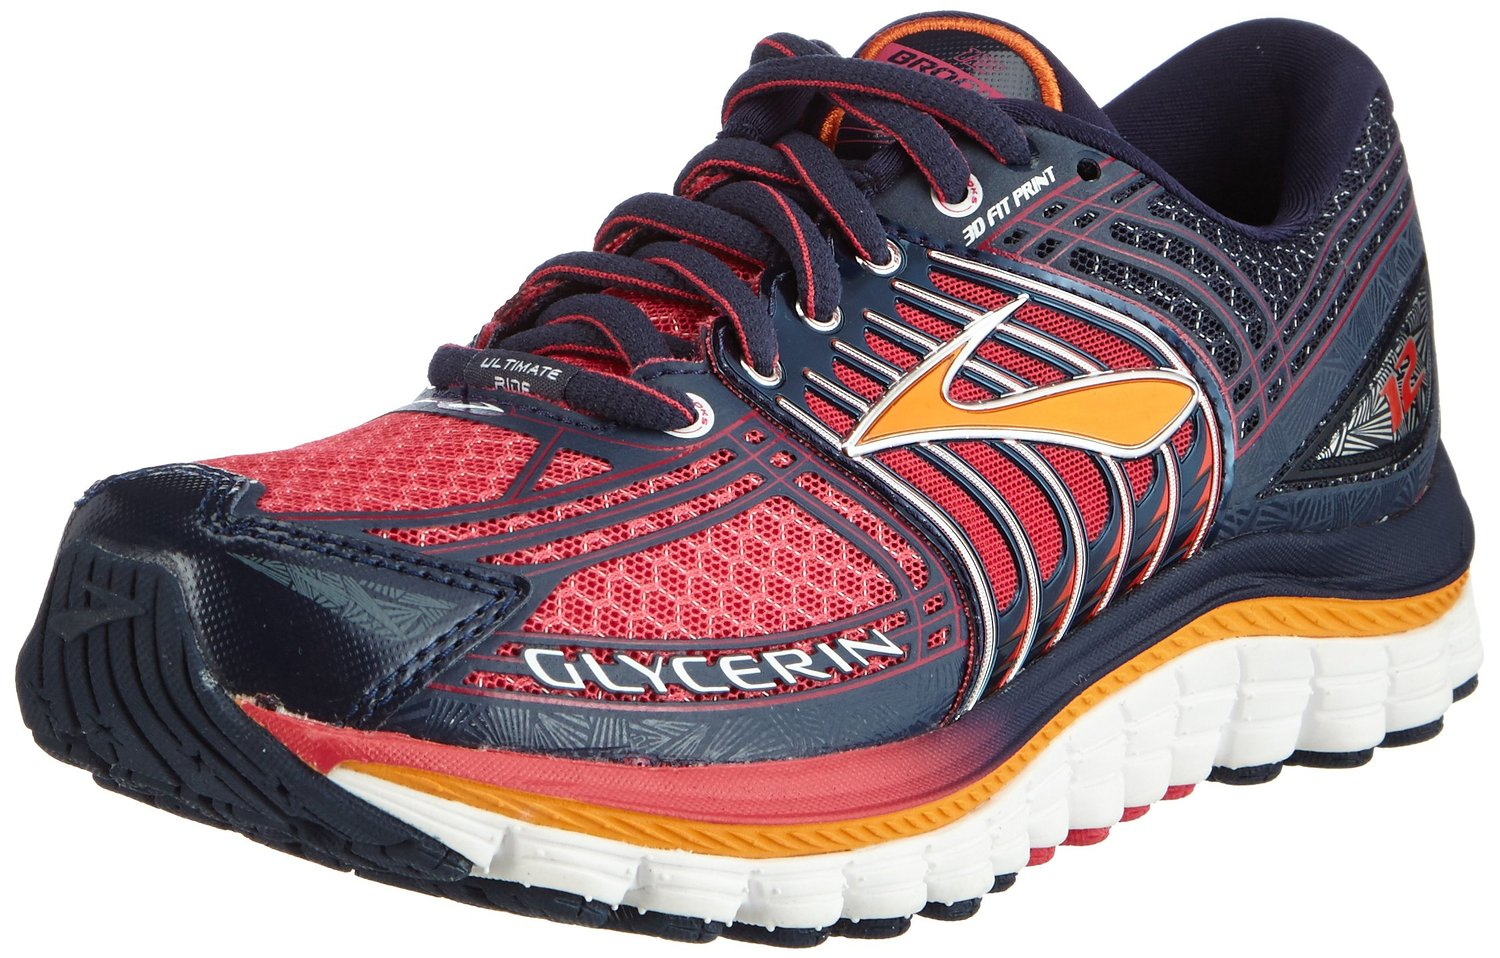 97368410948 Get Quotations · Brooks Womens Glycerin 12 Shoes